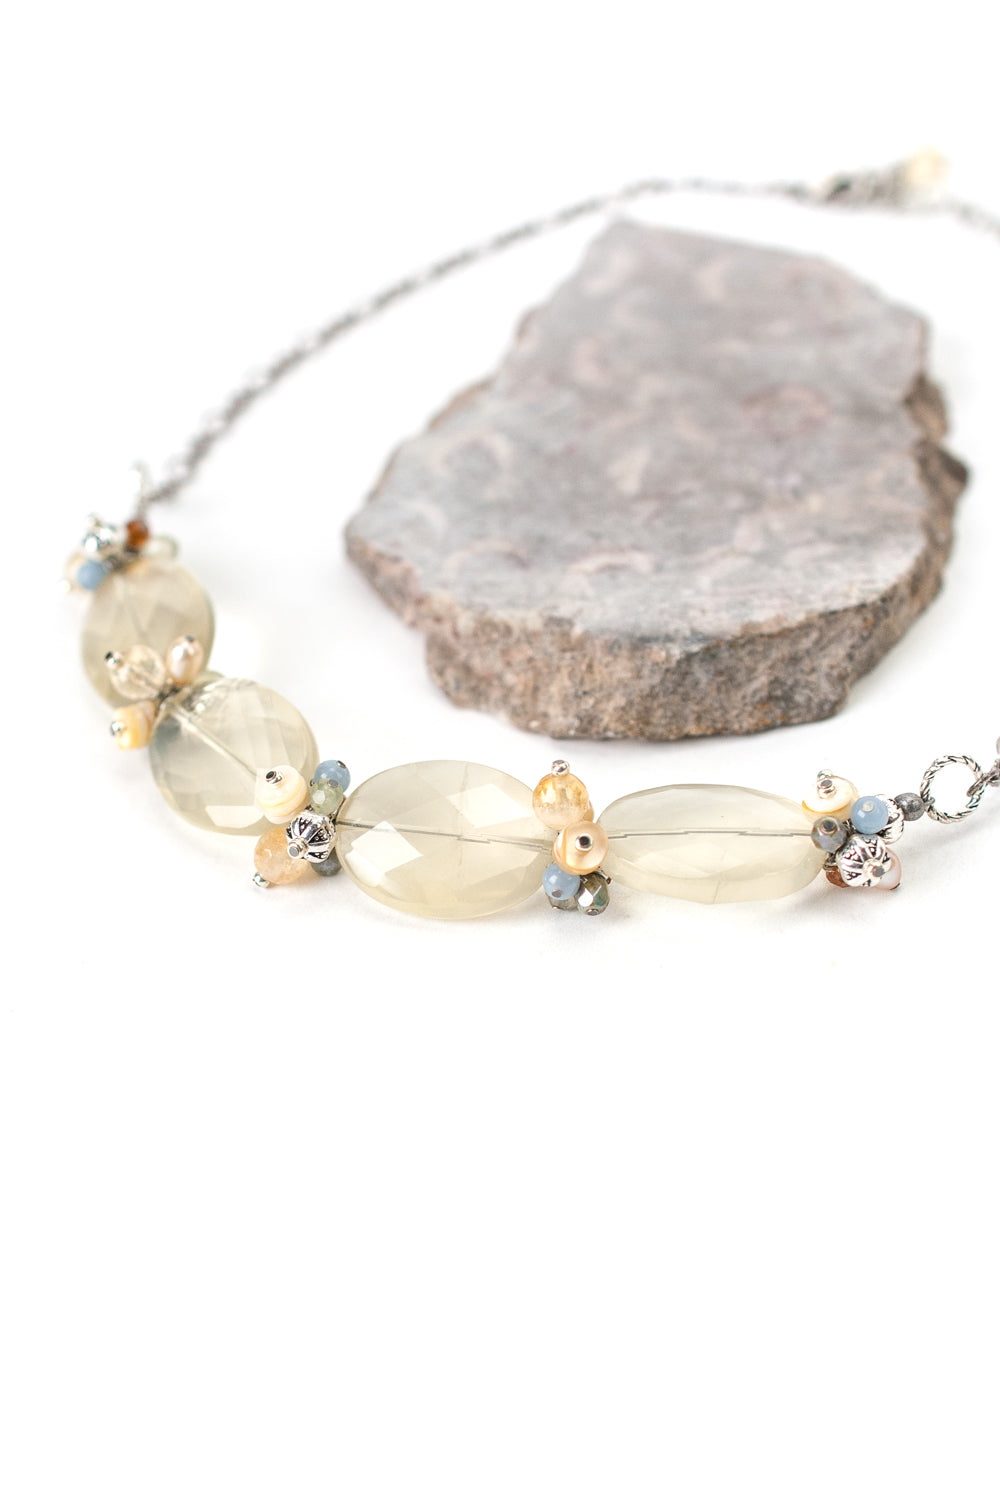 "Refresh 16.75-18.75"" Citrine, Pearl, Heishe Shell Cluster Necklace"